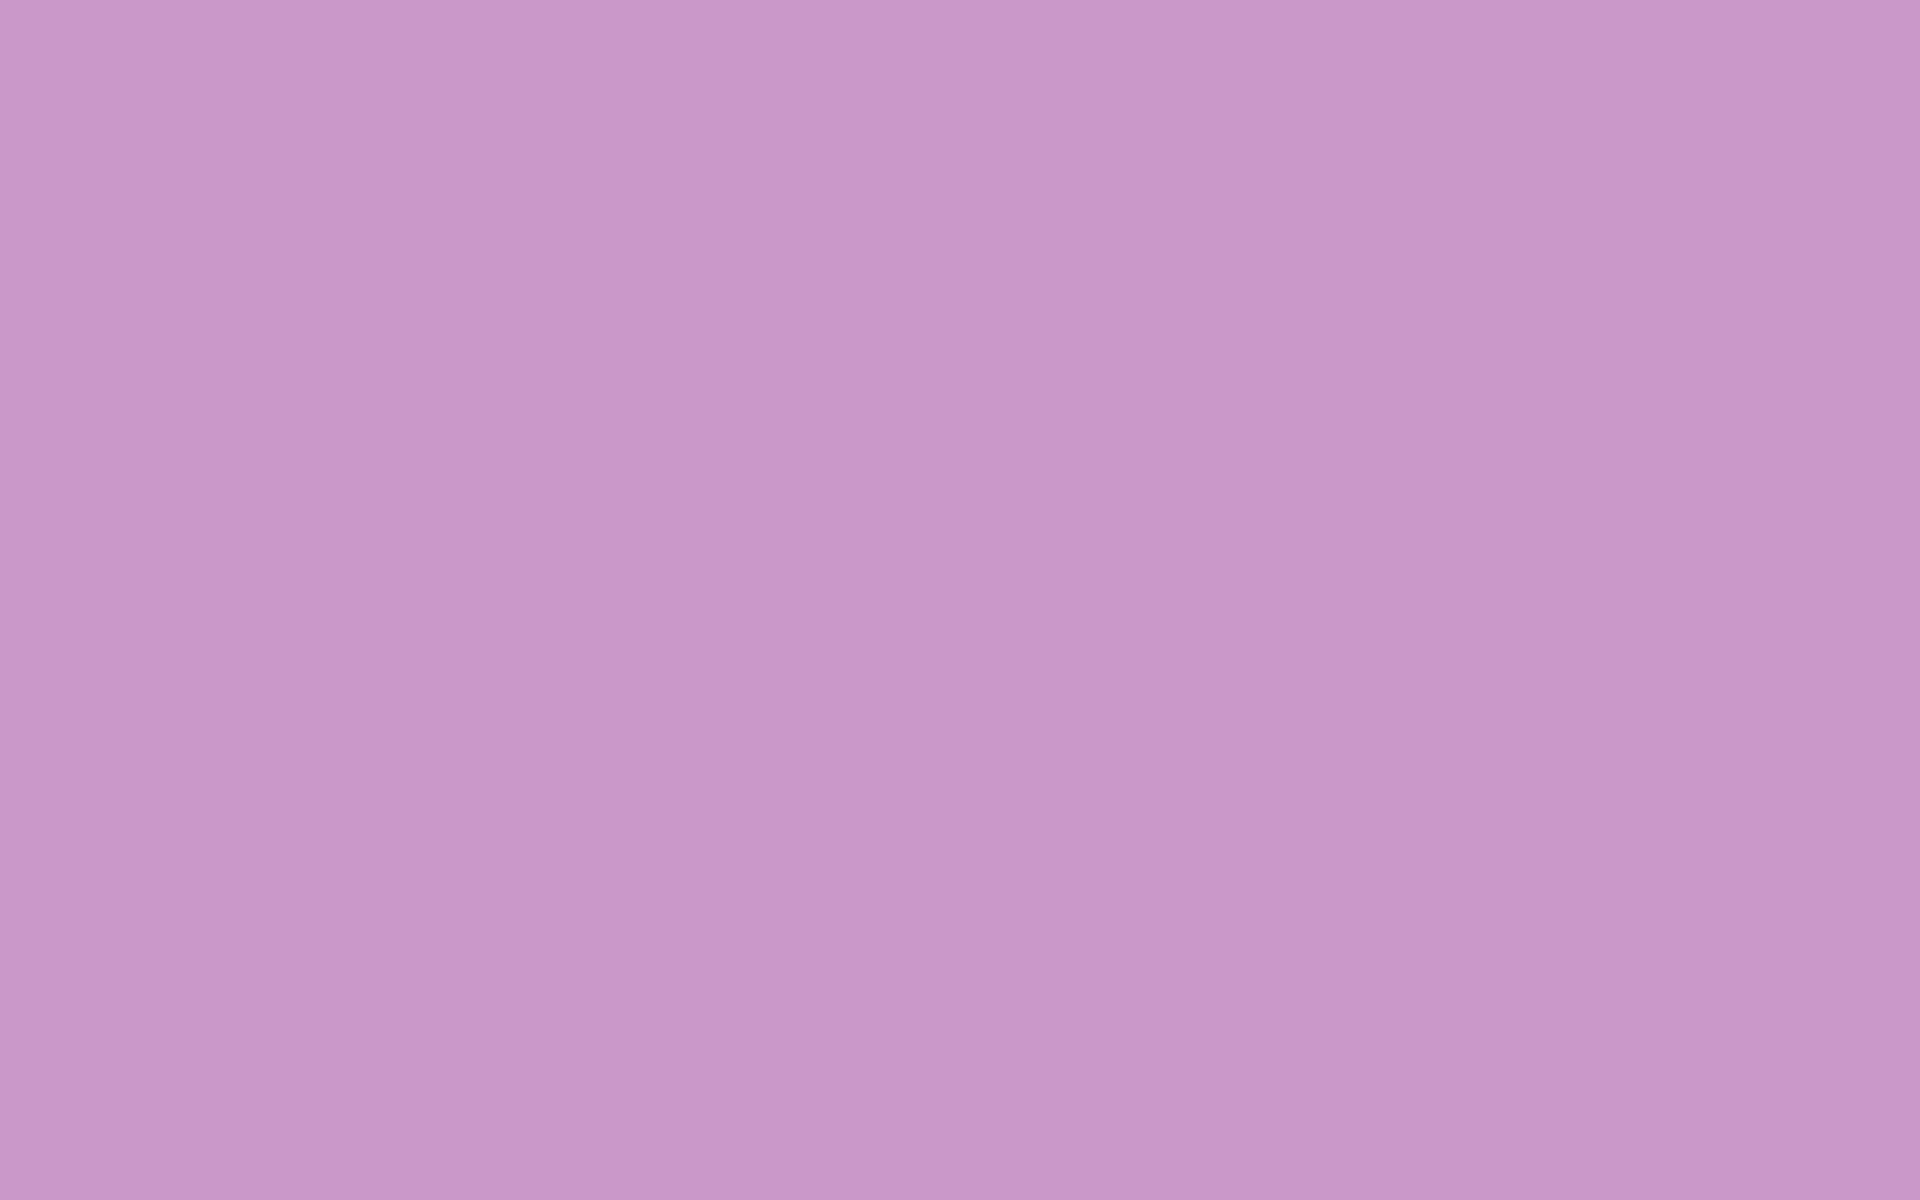 1920x1200 Pastel Violet Solid Color Background